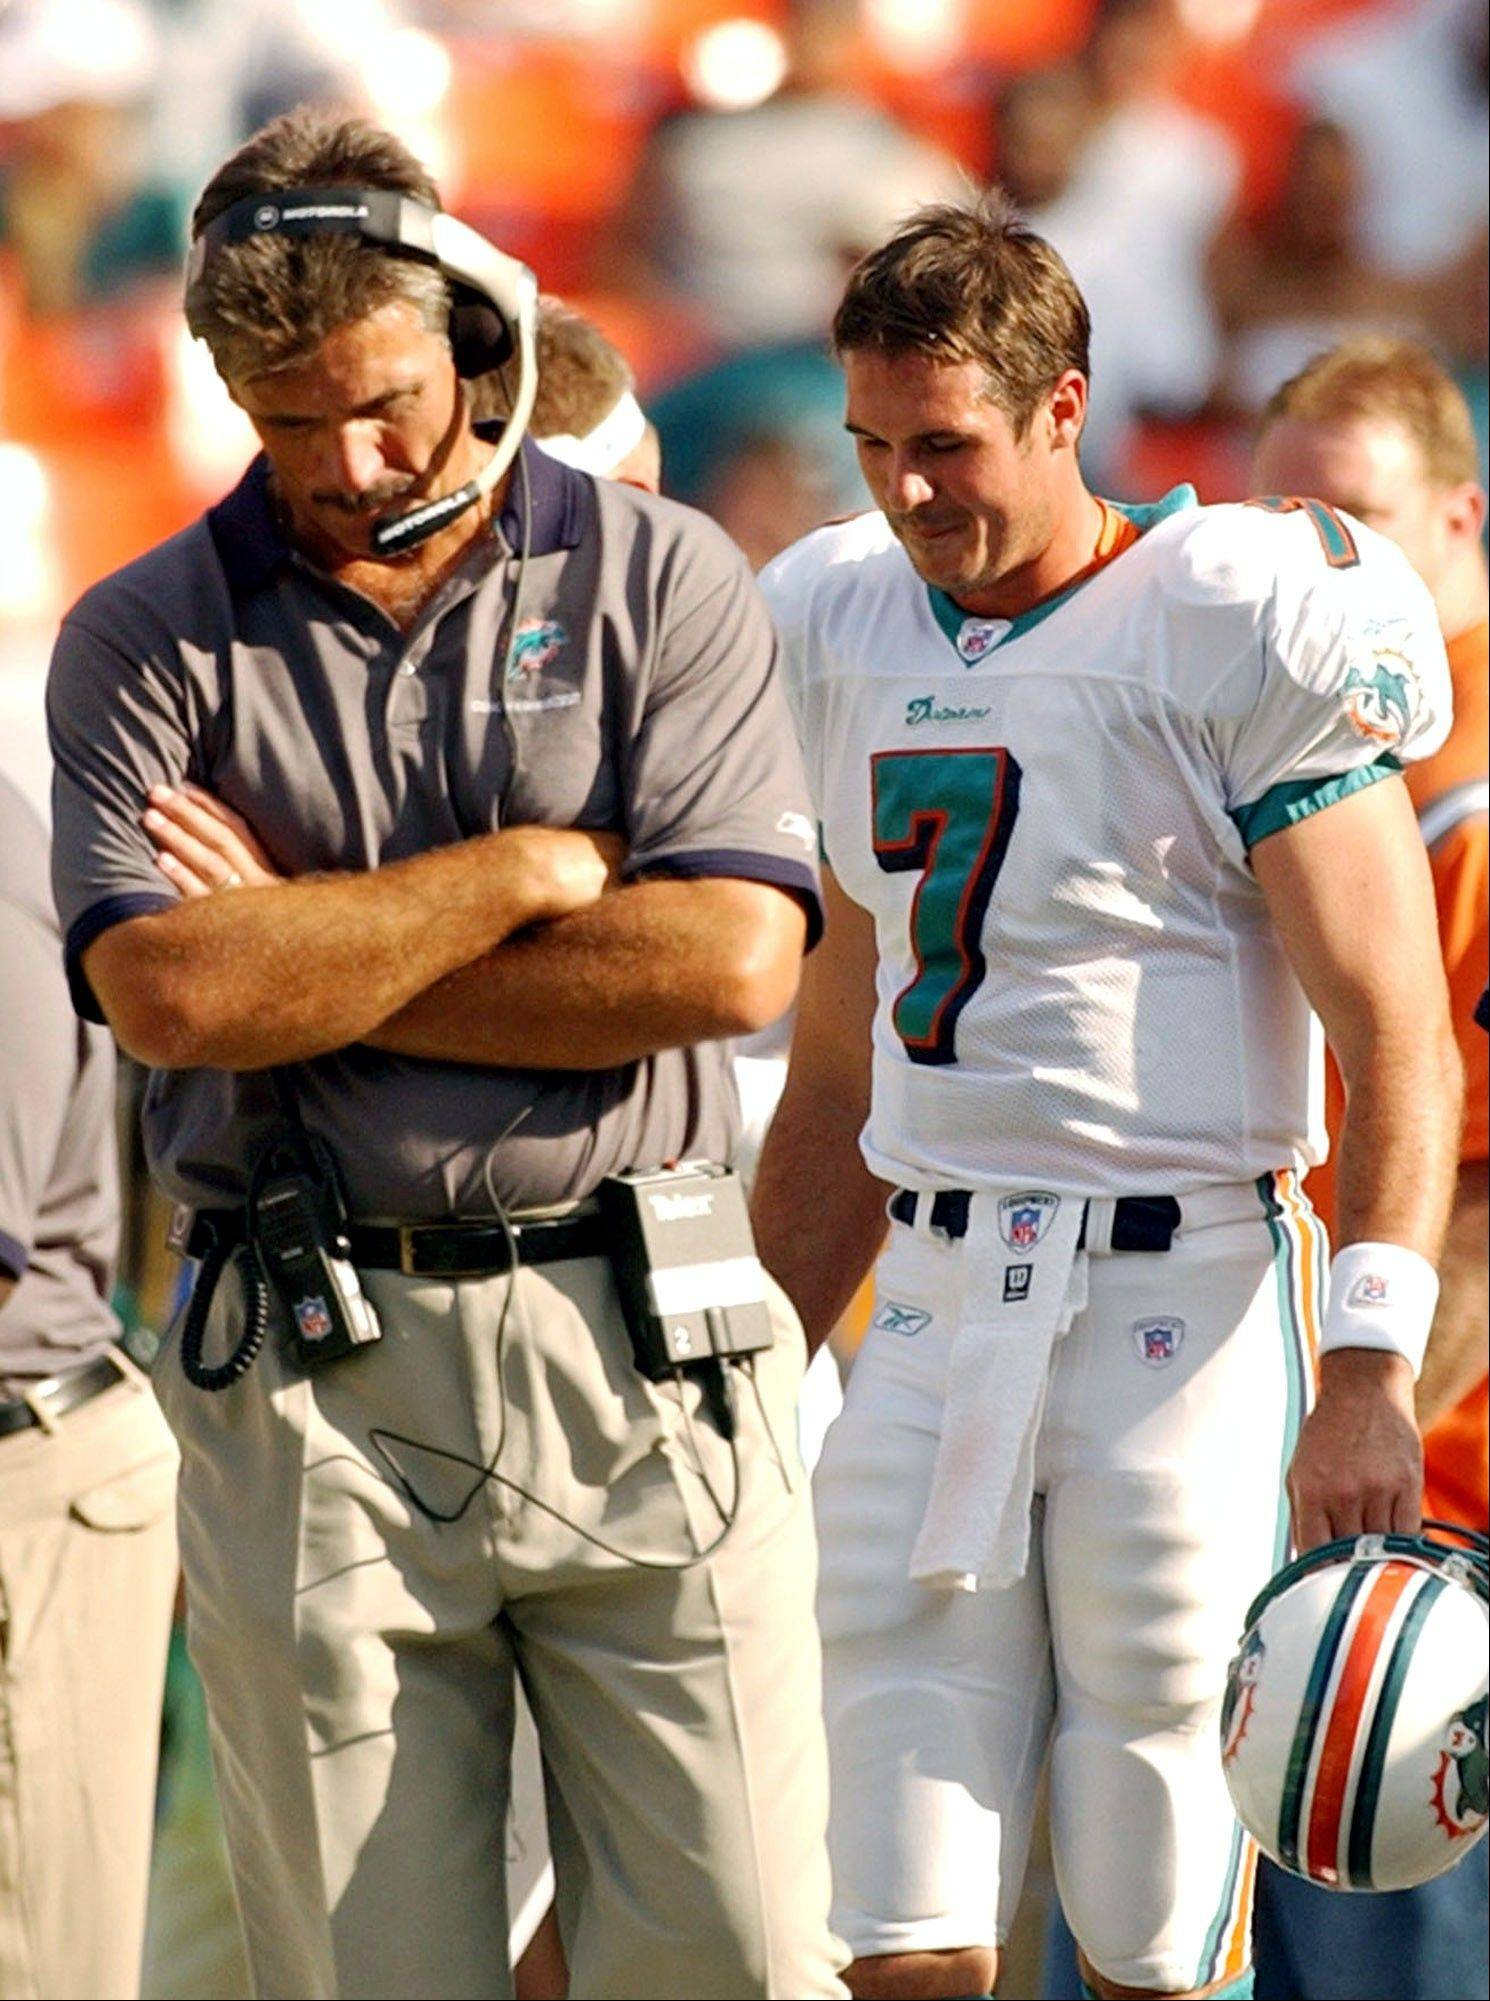 Former Bears coach Dave Wannstedt brought Trestman aboard for the 2004 Miami Dolphins season. Trestman worked with quarterbacks A.J. Feeley and Jay Fiedler.